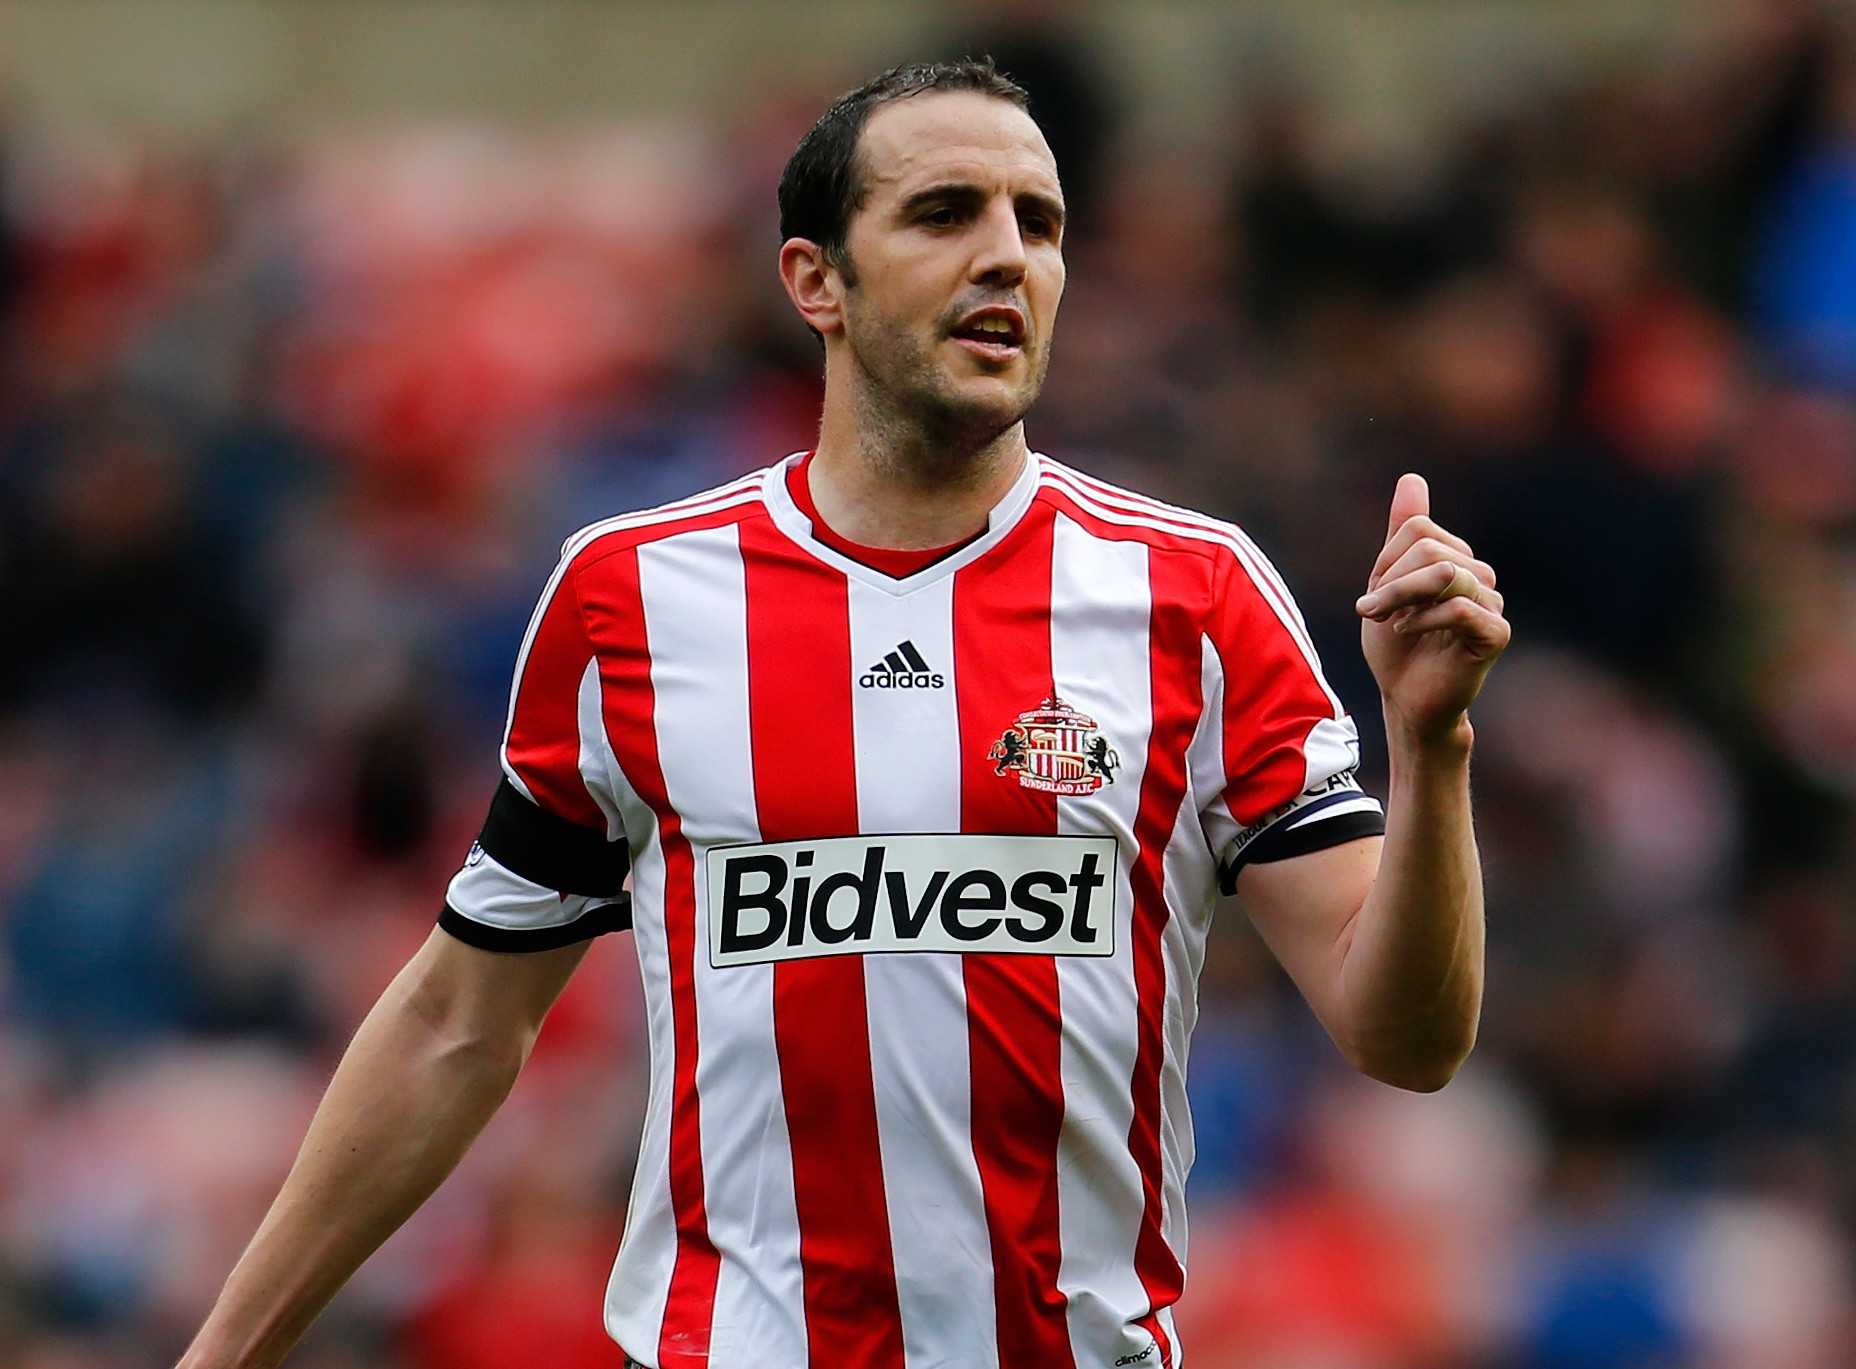 Most bizarre transfer ever? Tottenham make £3million bid for John O'Shea